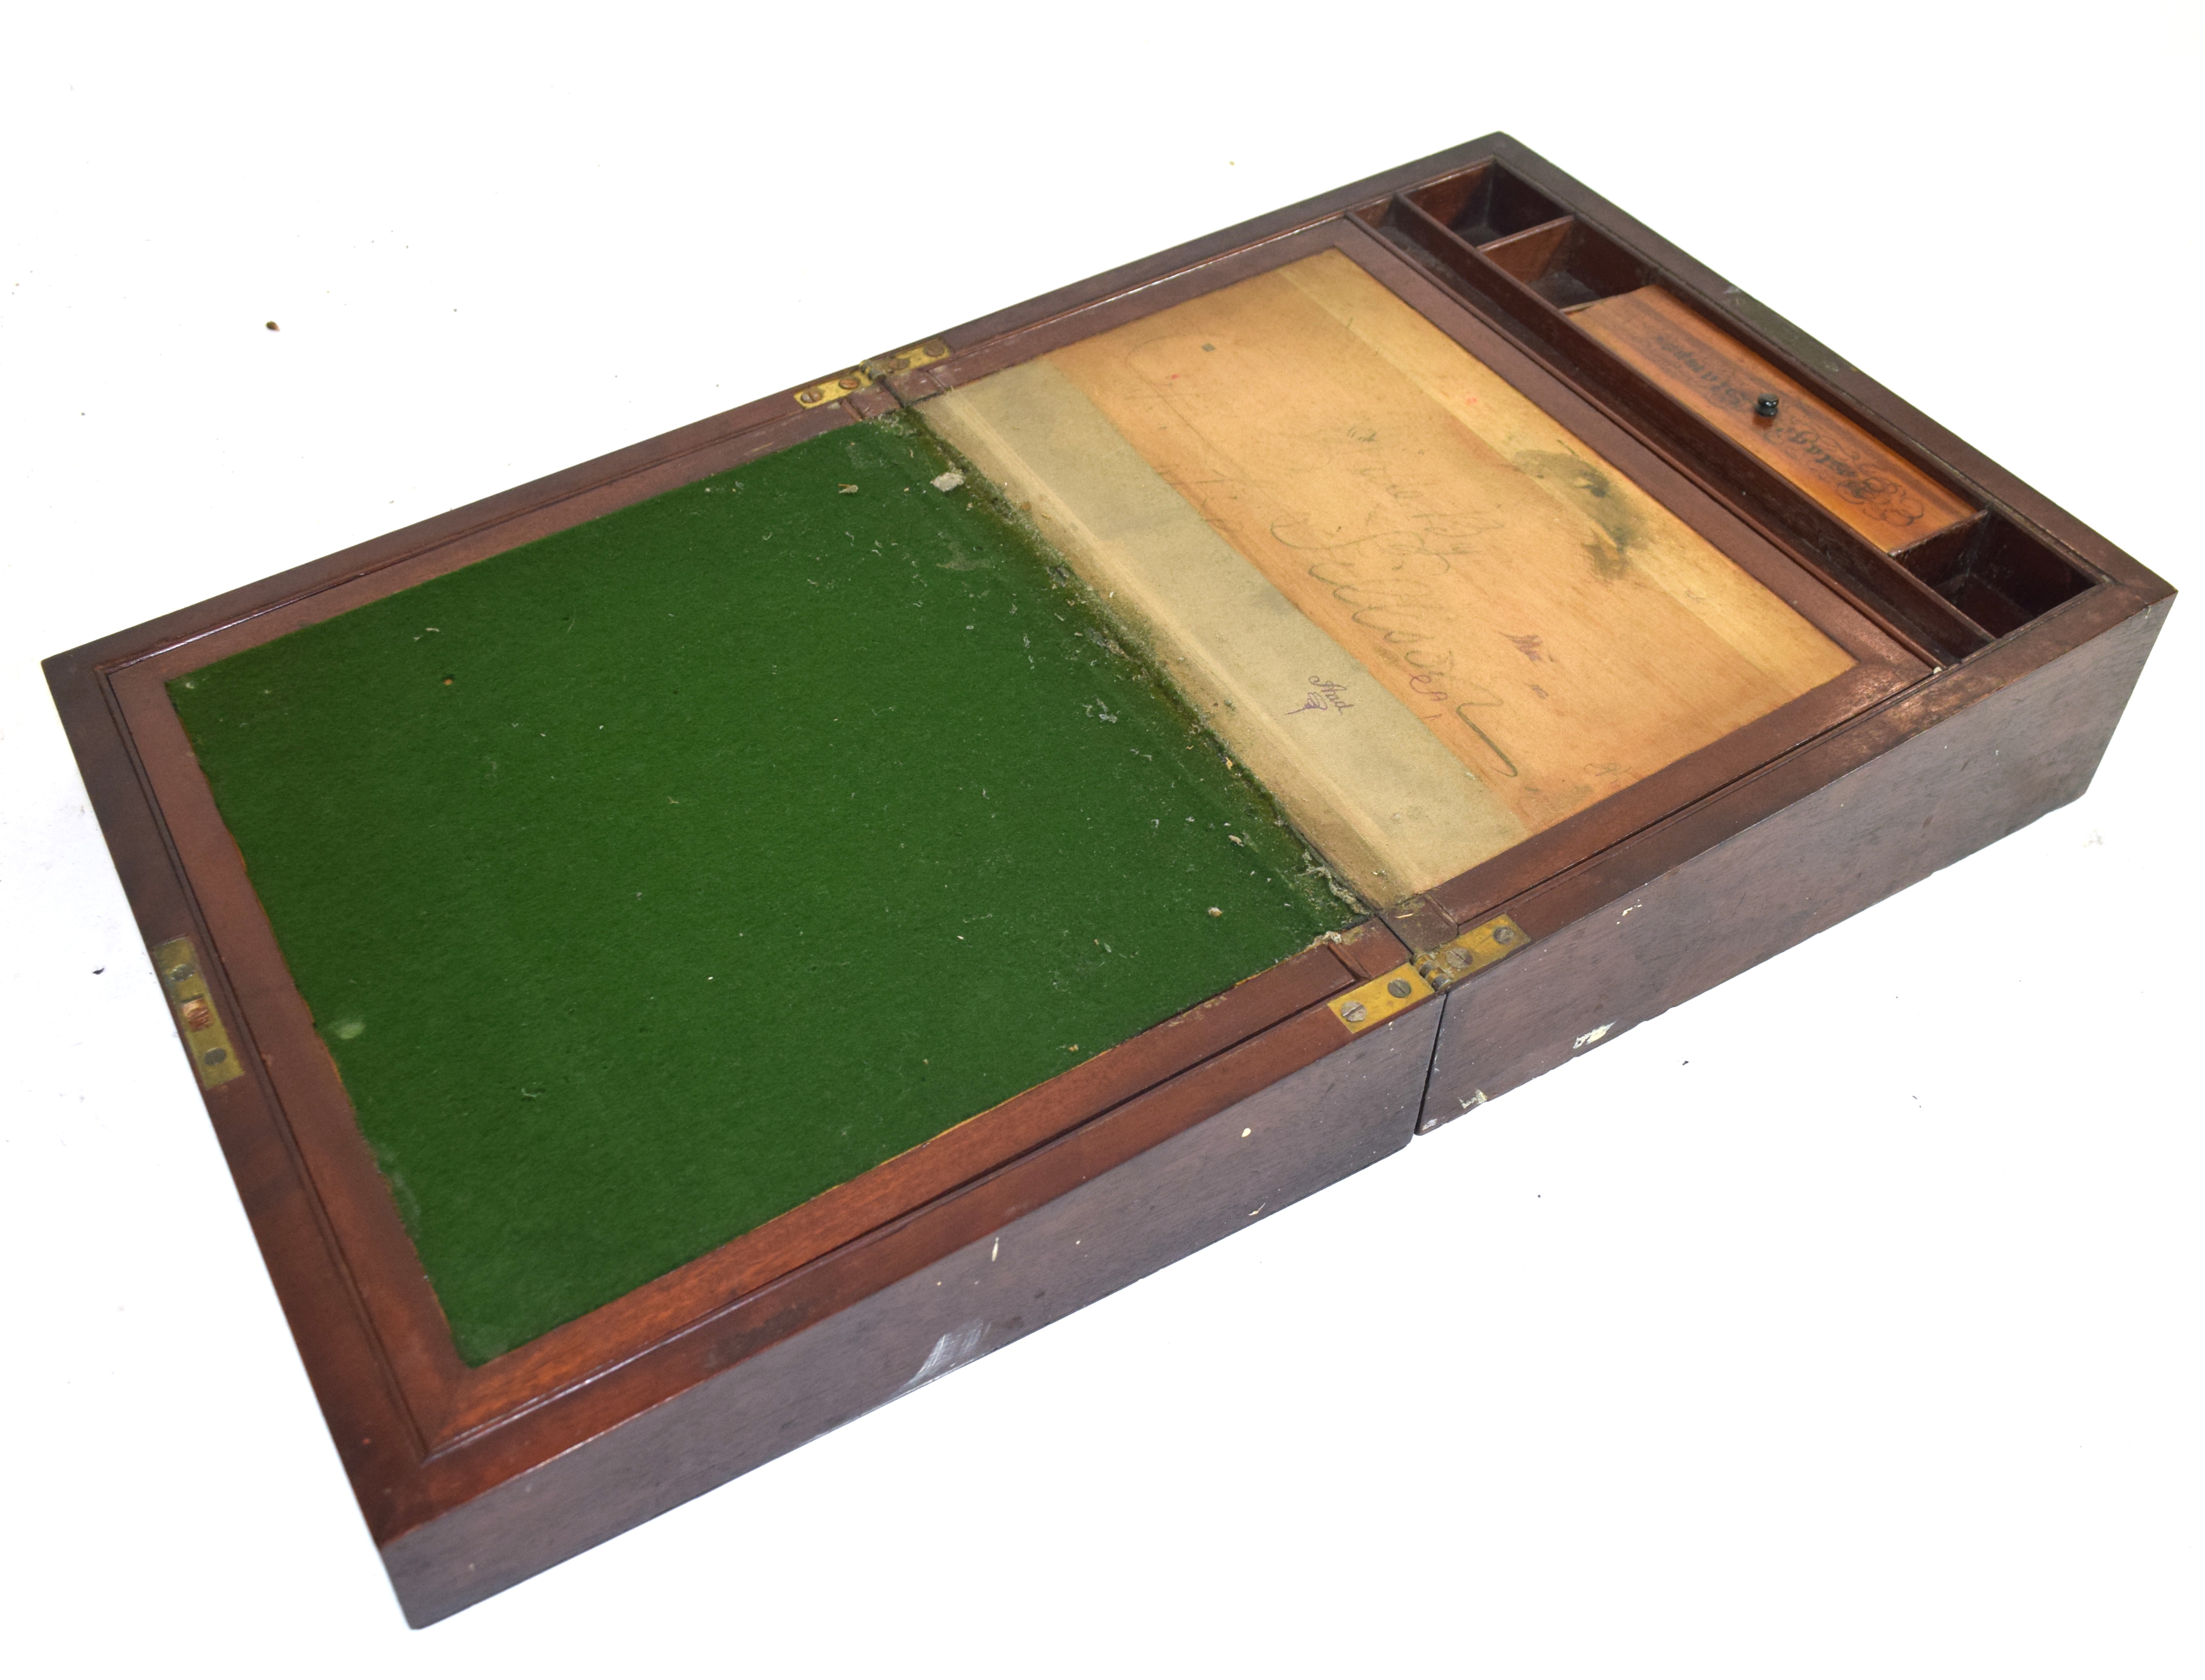 Large 19th century mahogany writing box with fitted interior, 38cm wide Condition: very worn